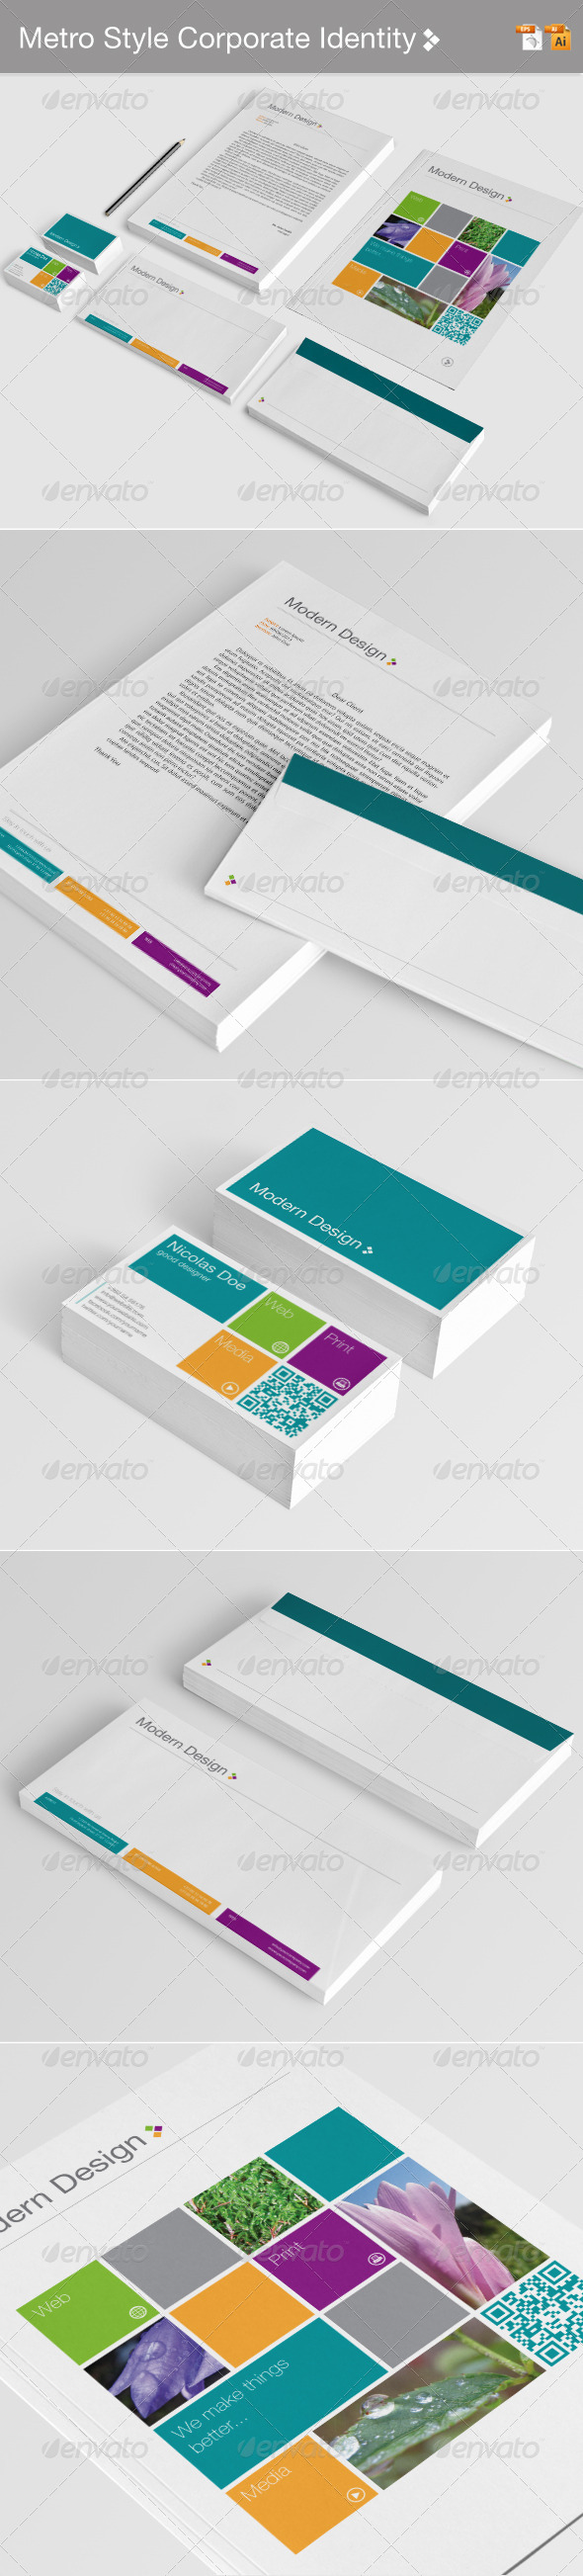 Metro Style Corporate Identity - Stationery Print Templates